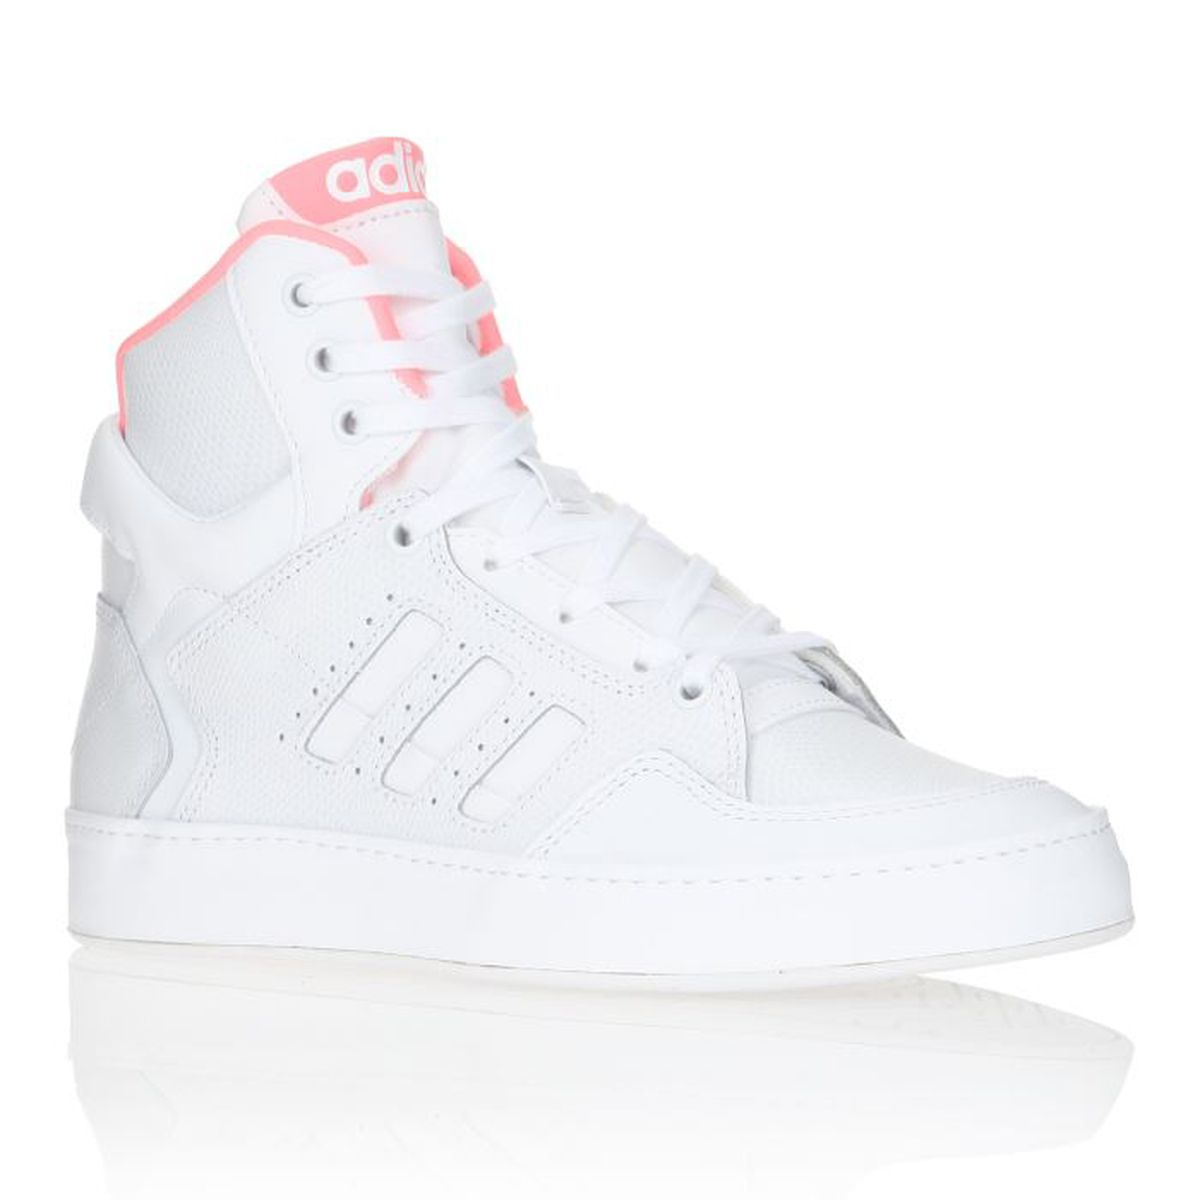 official photos 5e8b2 65c1a BASKET ADIDAS ORIGINALS Baskets Bankshot 2.0 W Femme